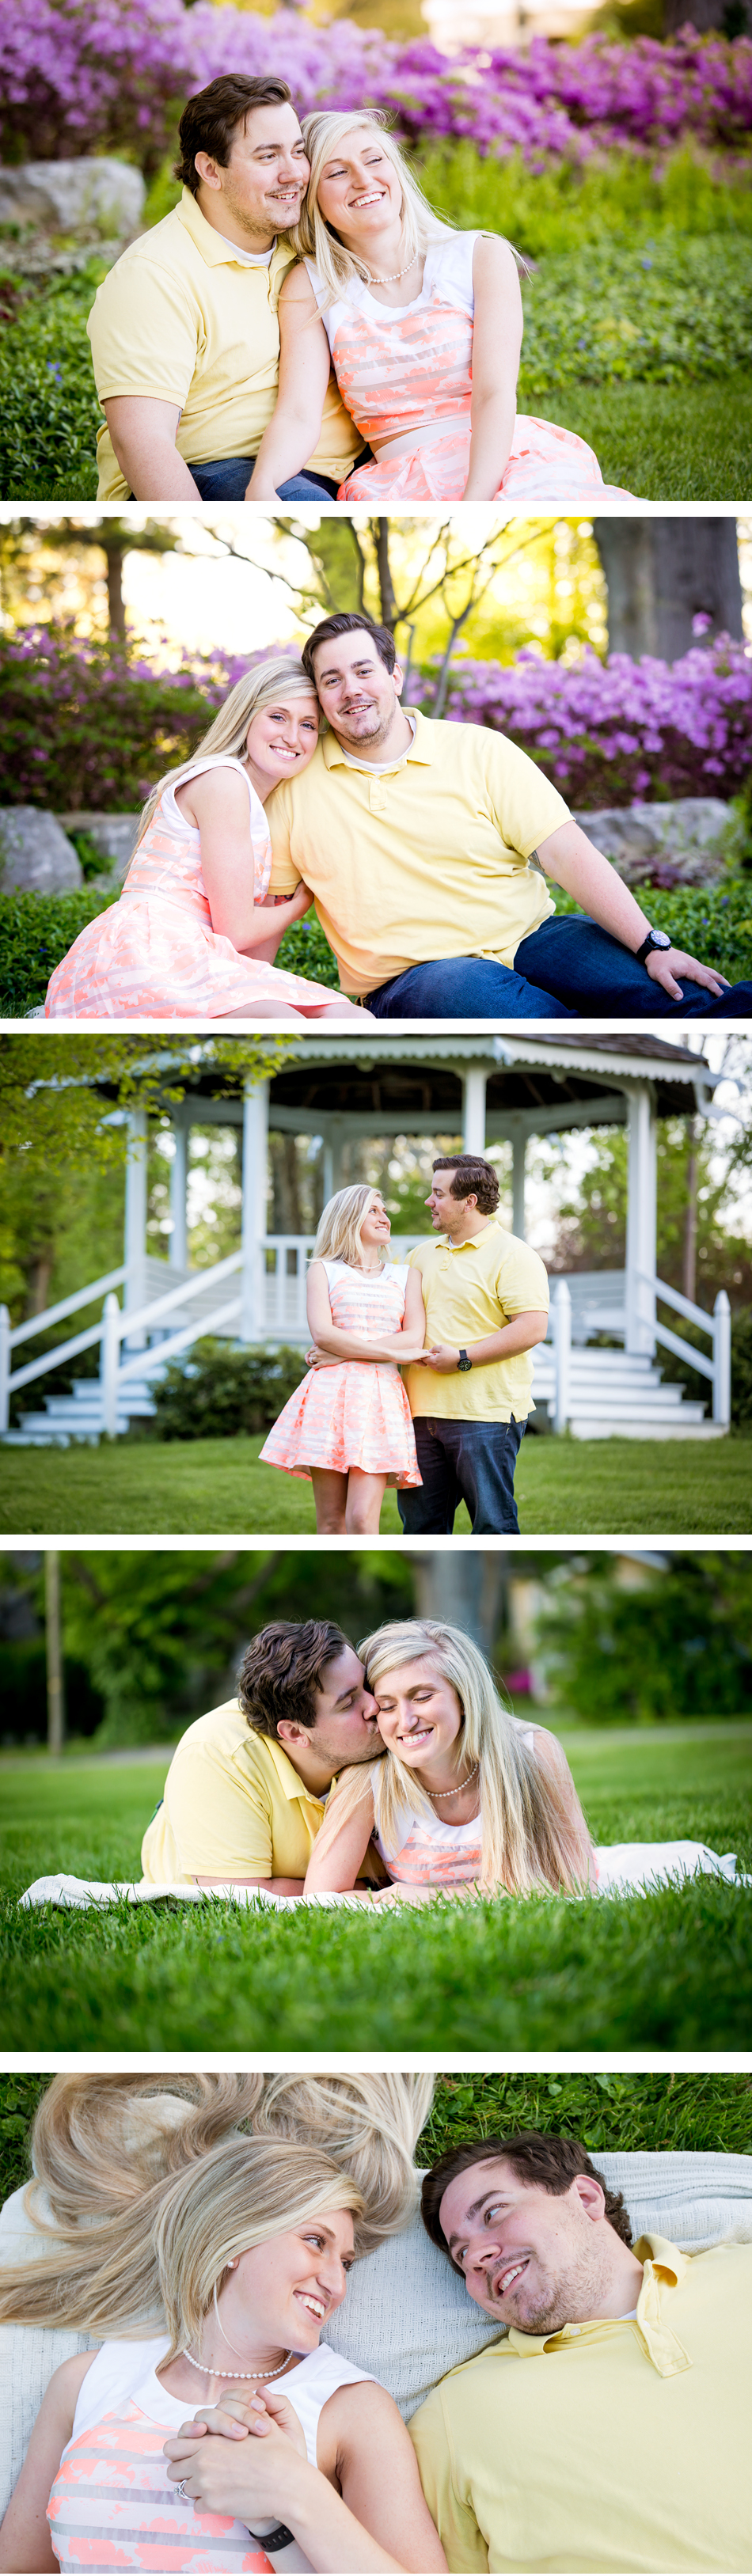 Anchorage Engagement Photos eMotion image